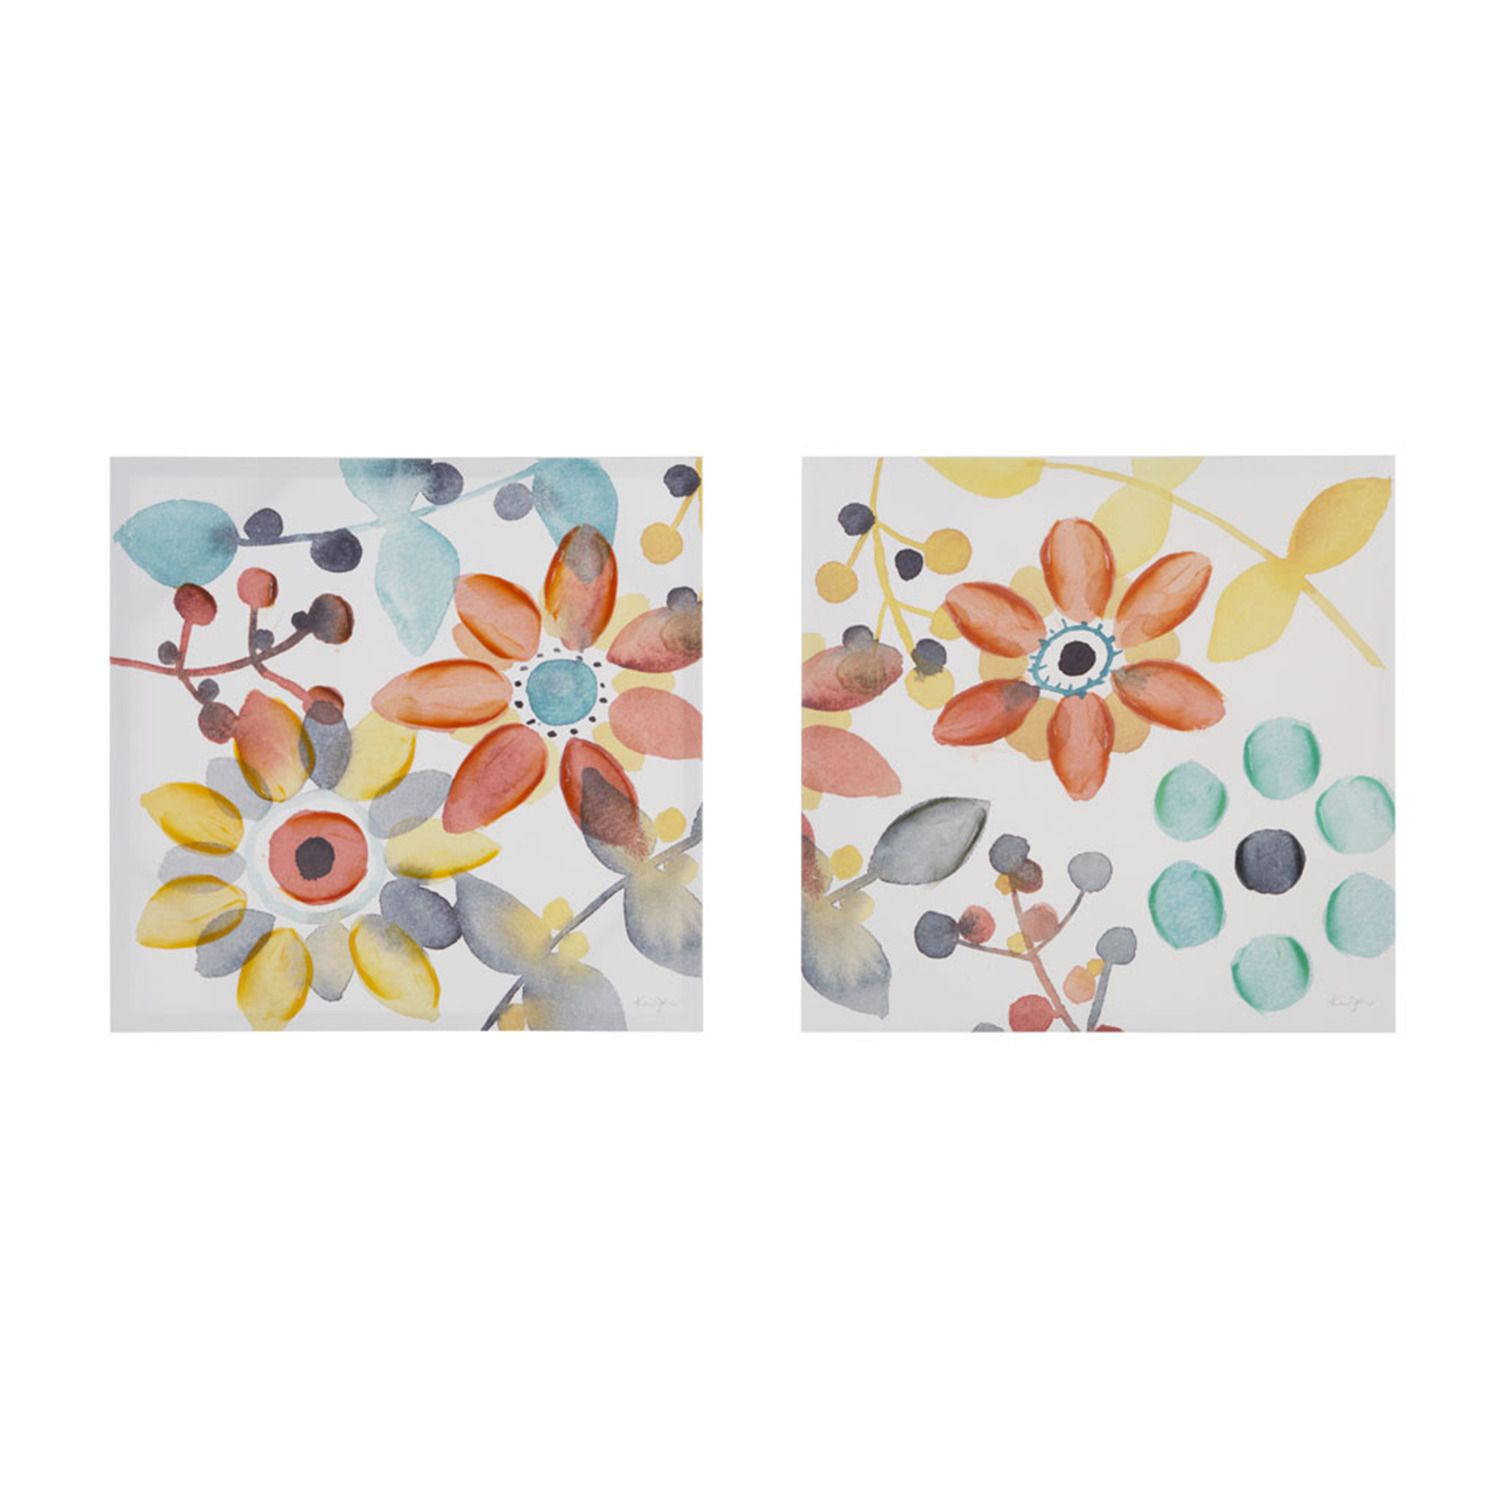 Intelligent Design 2-piece u0027u0027Sweet Floralsu0027u0027 Canvas Wall Art Set.  Intelligent Design 2-piece .